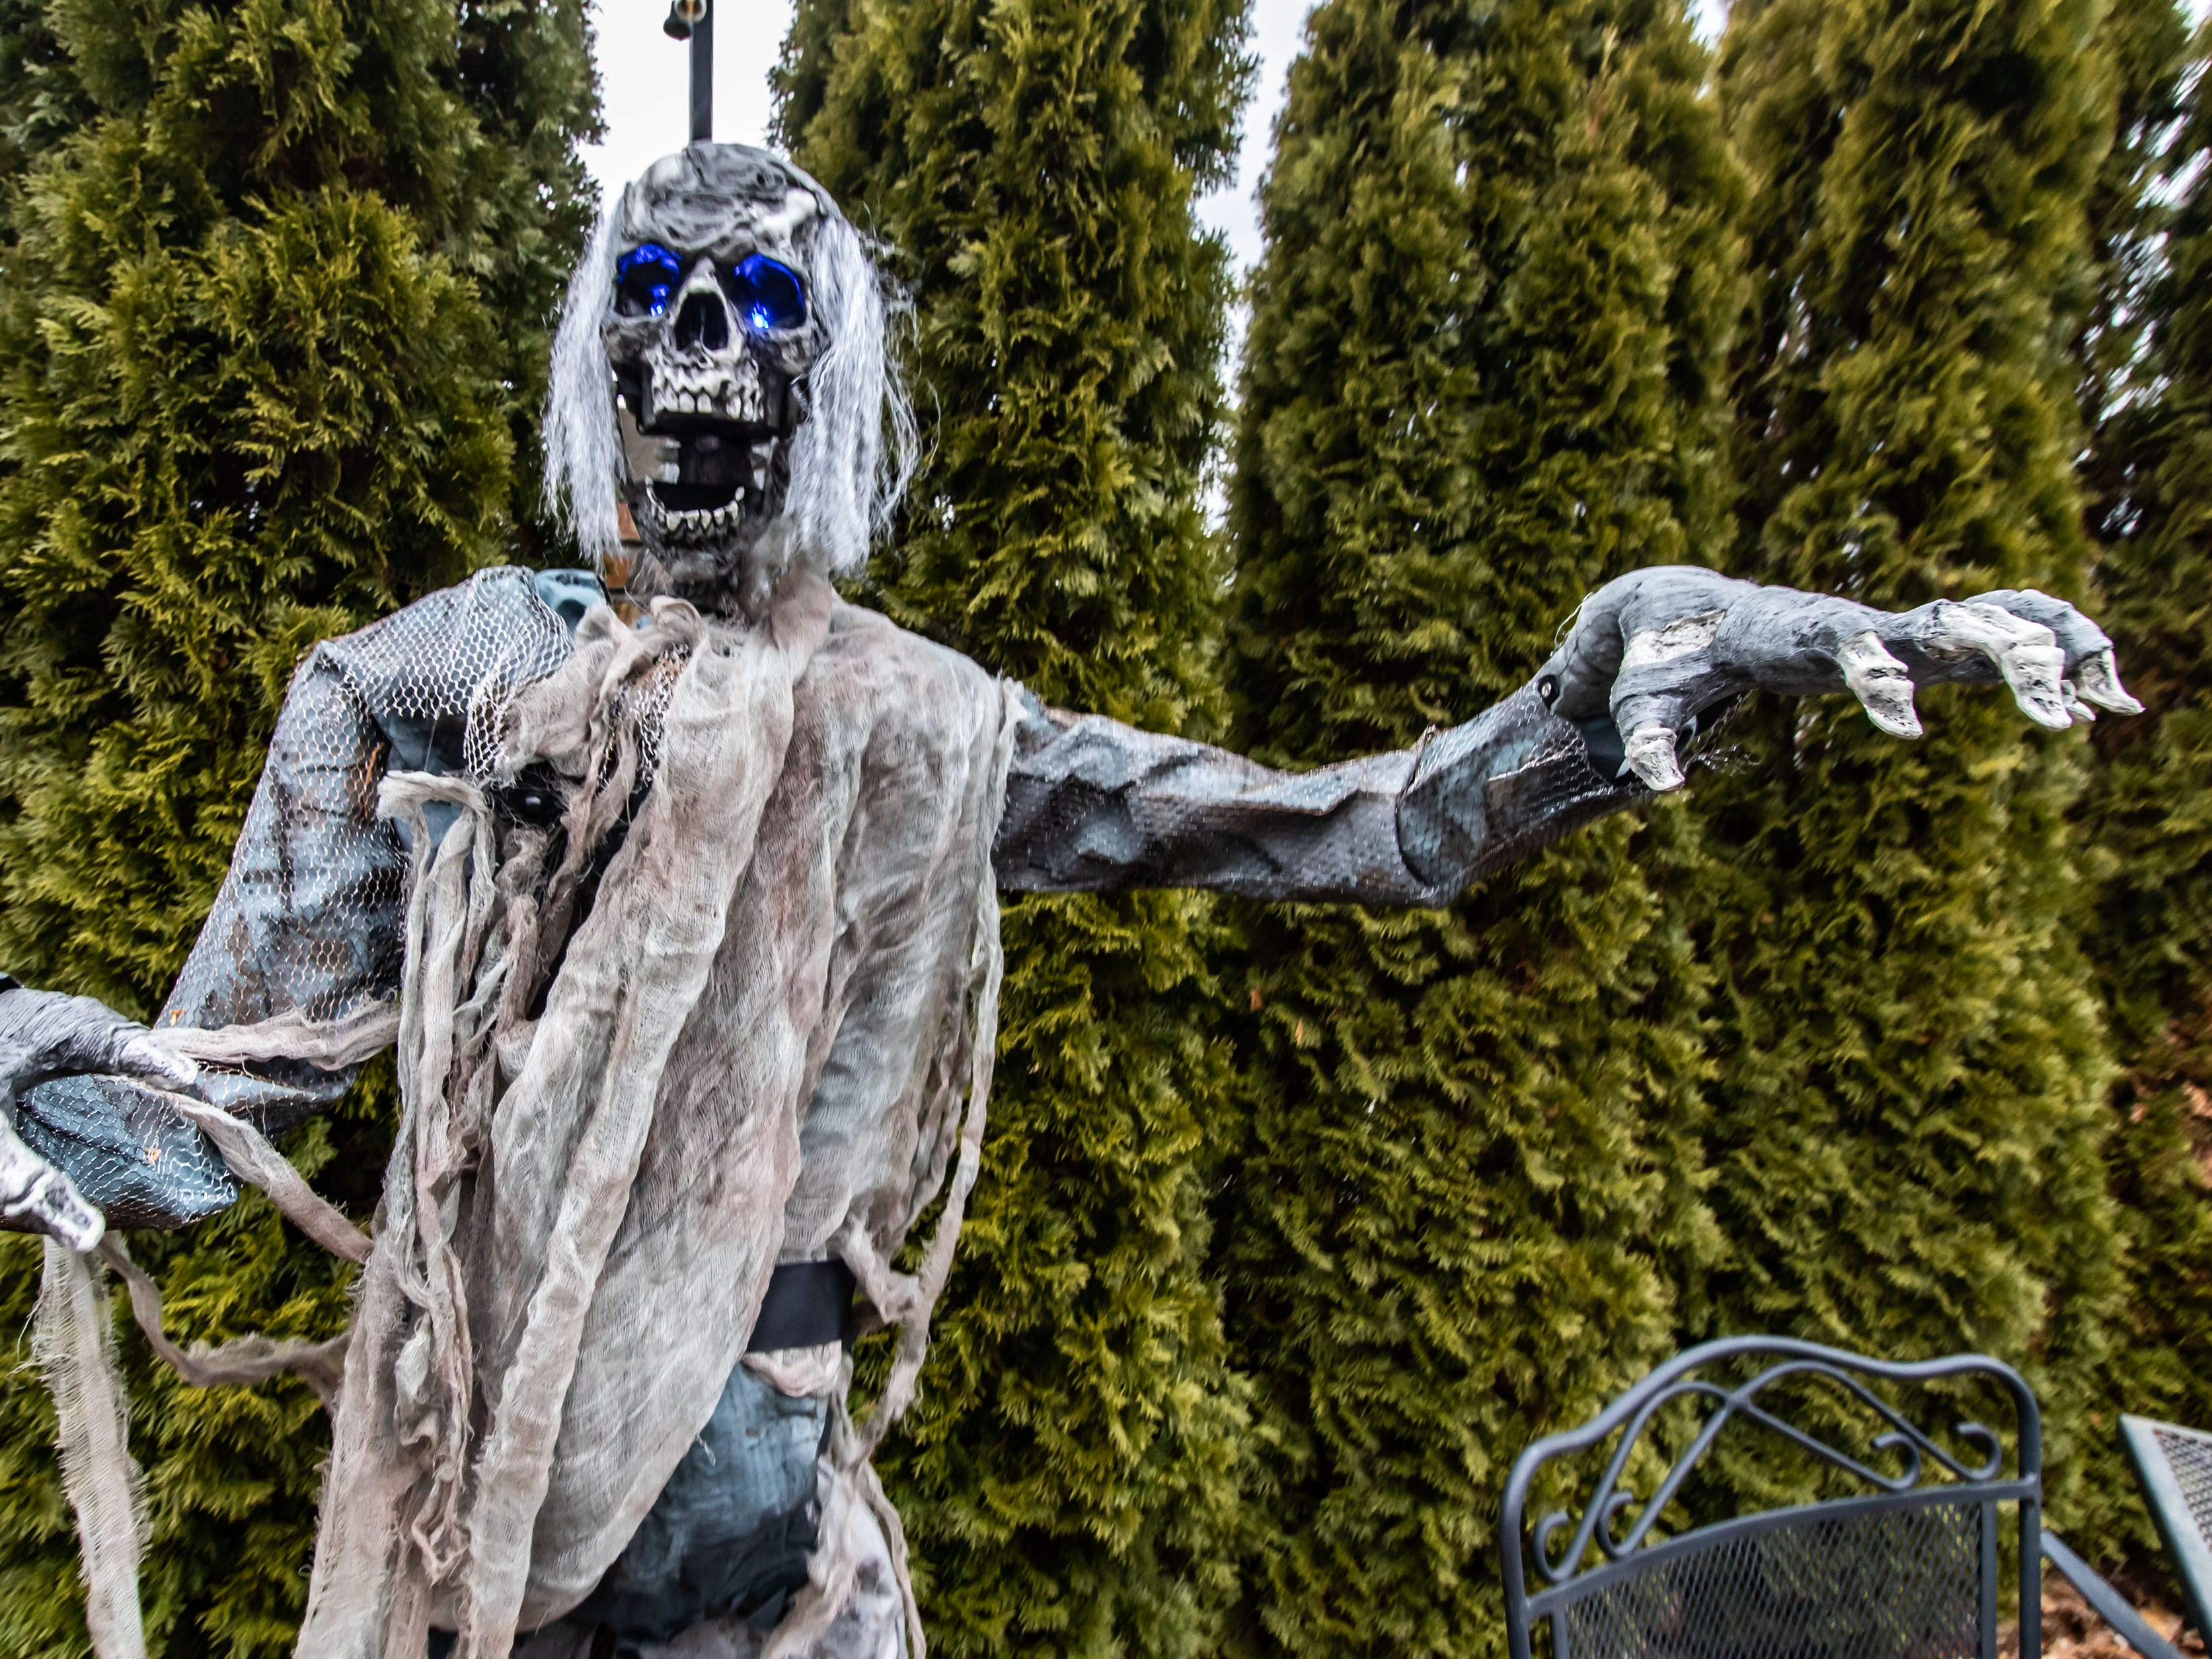 """A animatronic White Walker waits for unsuspecting victims during the """"Winter is Coming"""" pop-up bar experience at the City Lounge in Cudahy on Saturday, Jan. 12, 2019. The """"Game of Thrones"""" inspired attraction runs through Feb. 2 and features drink specials, White Walkers, ravens and a fire breathing dragon. Attendees must be 21 or older."""